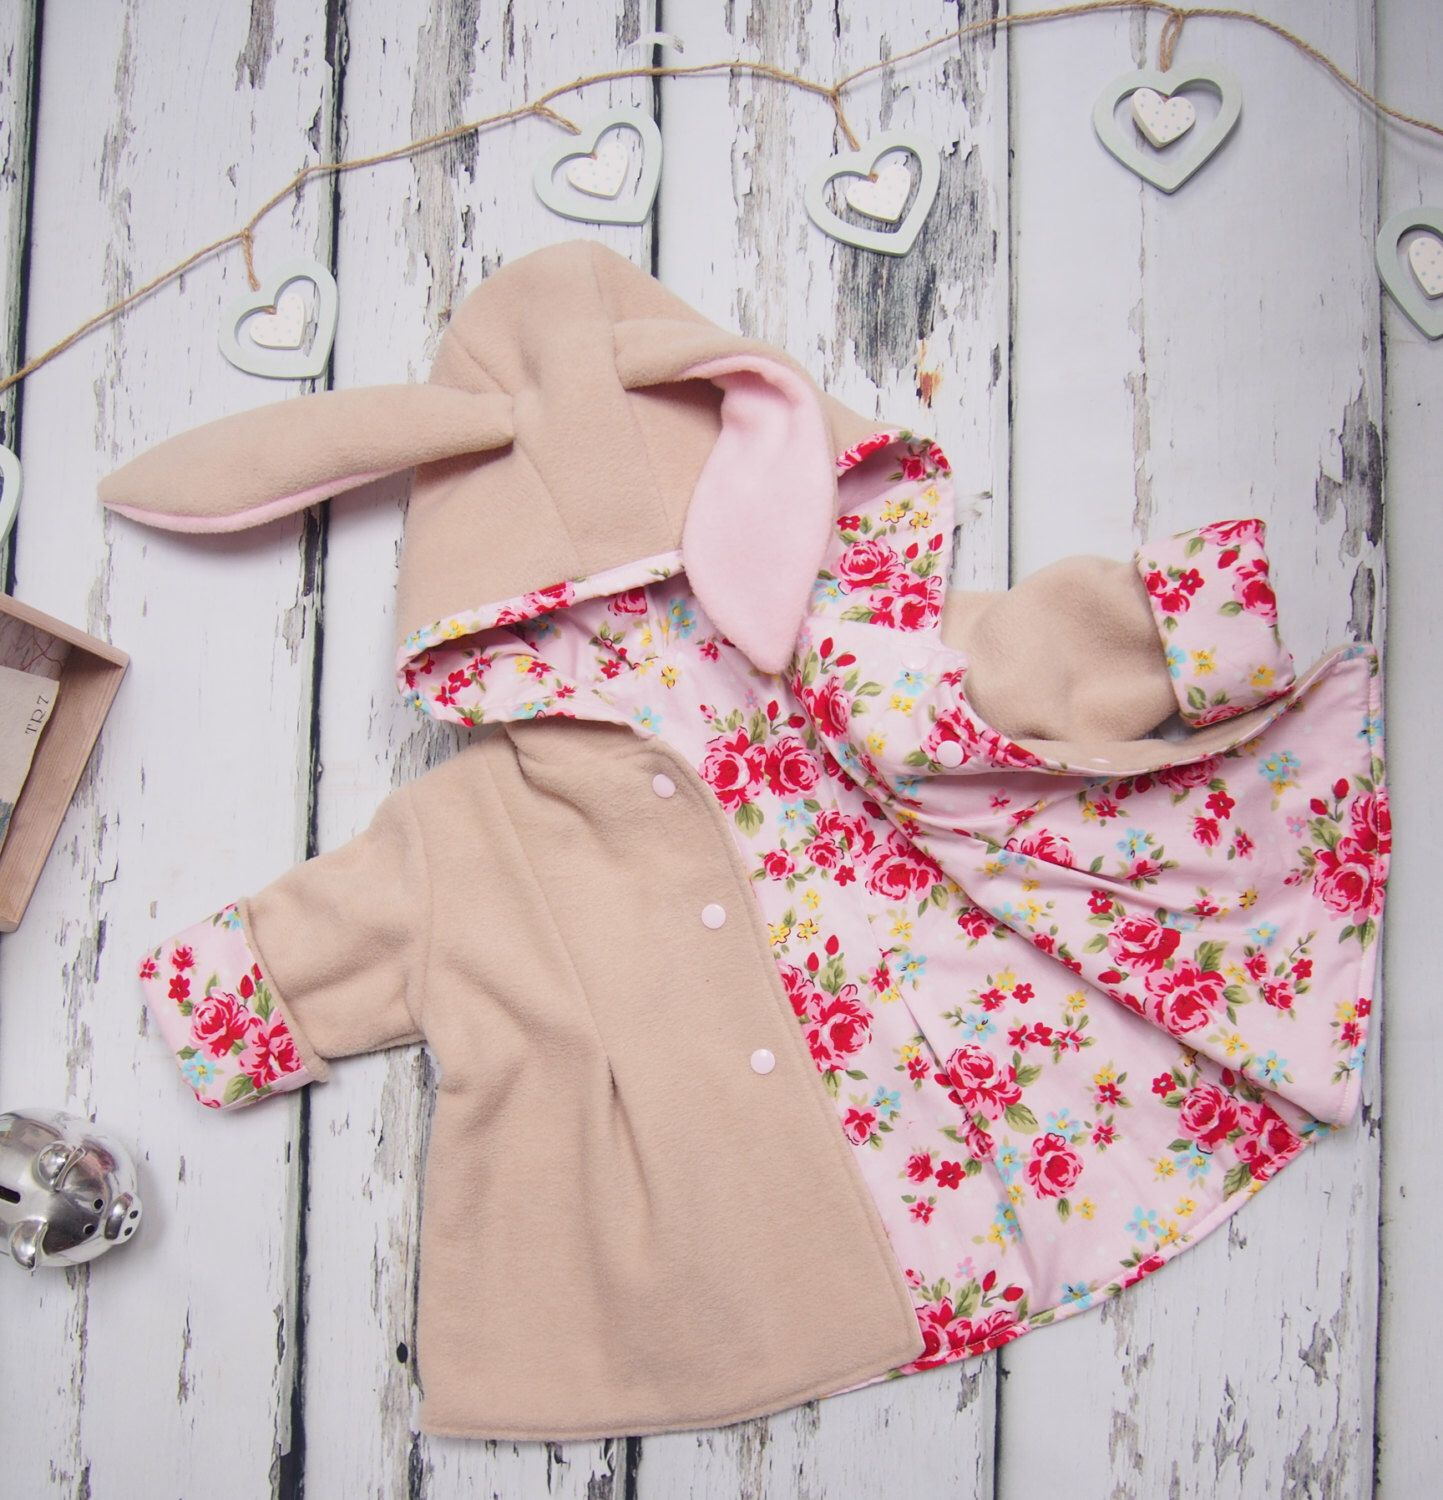 Bunny Jacket Girls Clothing Baby Girl Bunny Coat Animal